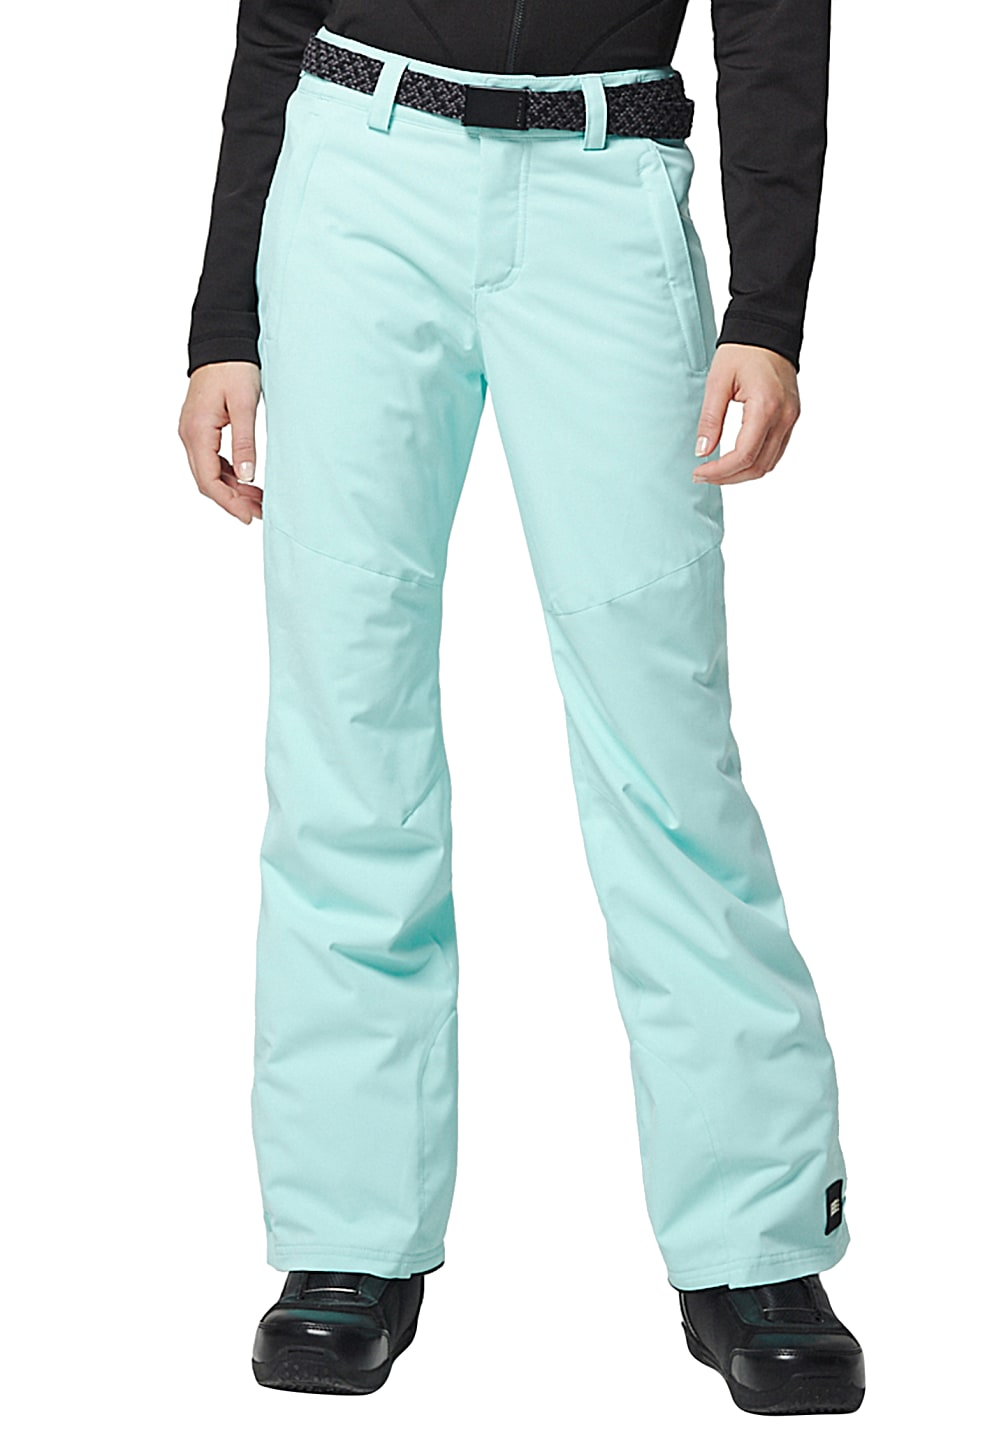 Hosen - O'Neill Star Insulated Snowboardhose für Damen Blau  - Onlineshop Planet Sports